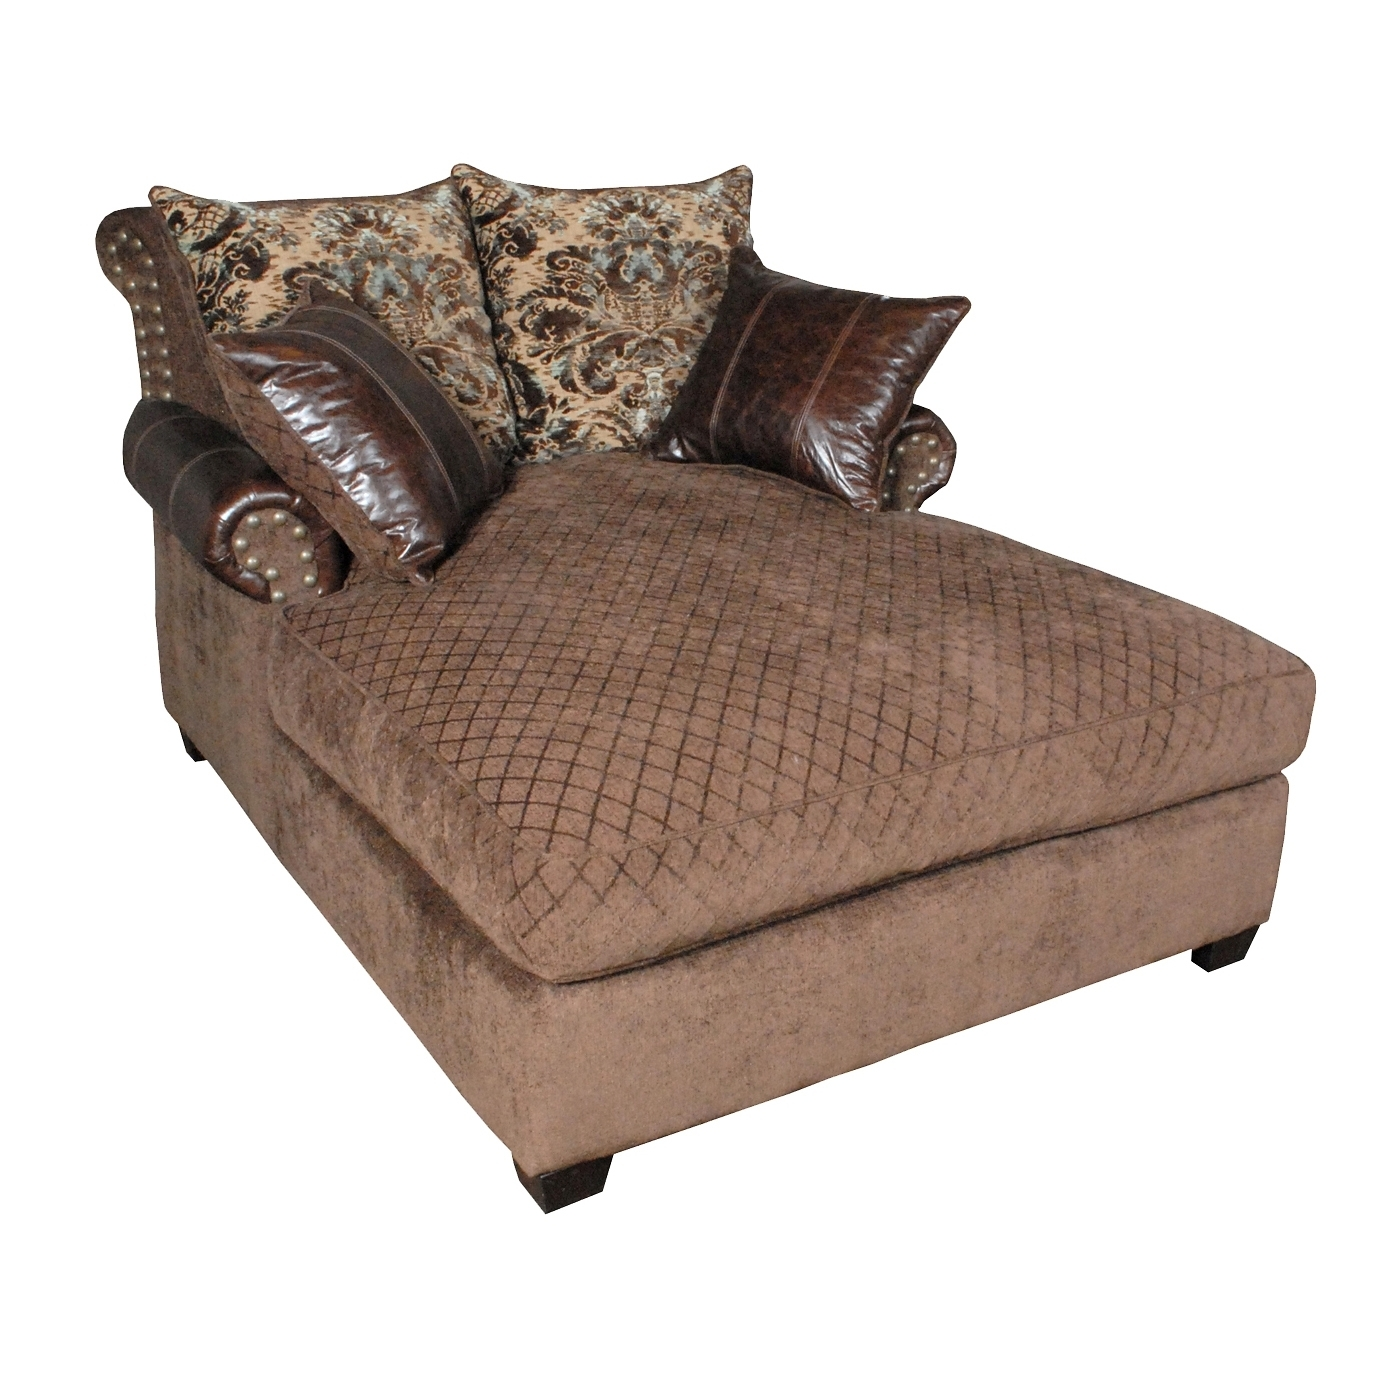 Fashionable Large Chaise Lounges With Regard To Oversized Chaise Lounge – Decofurnish (View 13 of 15)